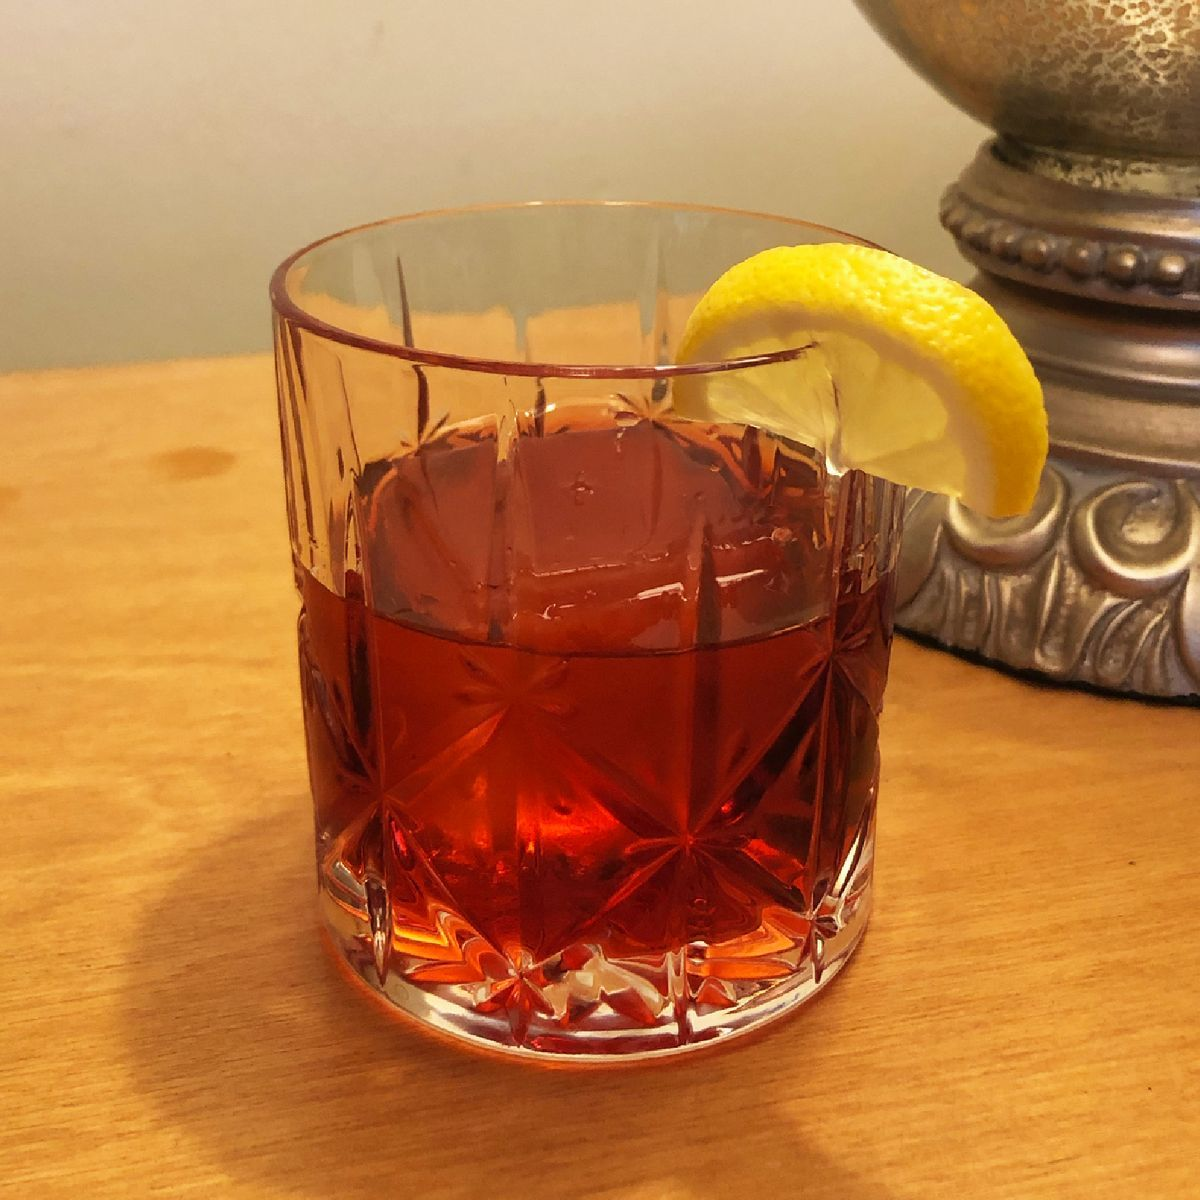 This is said to be Queen Elizabeth's favorite cocktail (one of four she has daily). It's served to her before lunch with